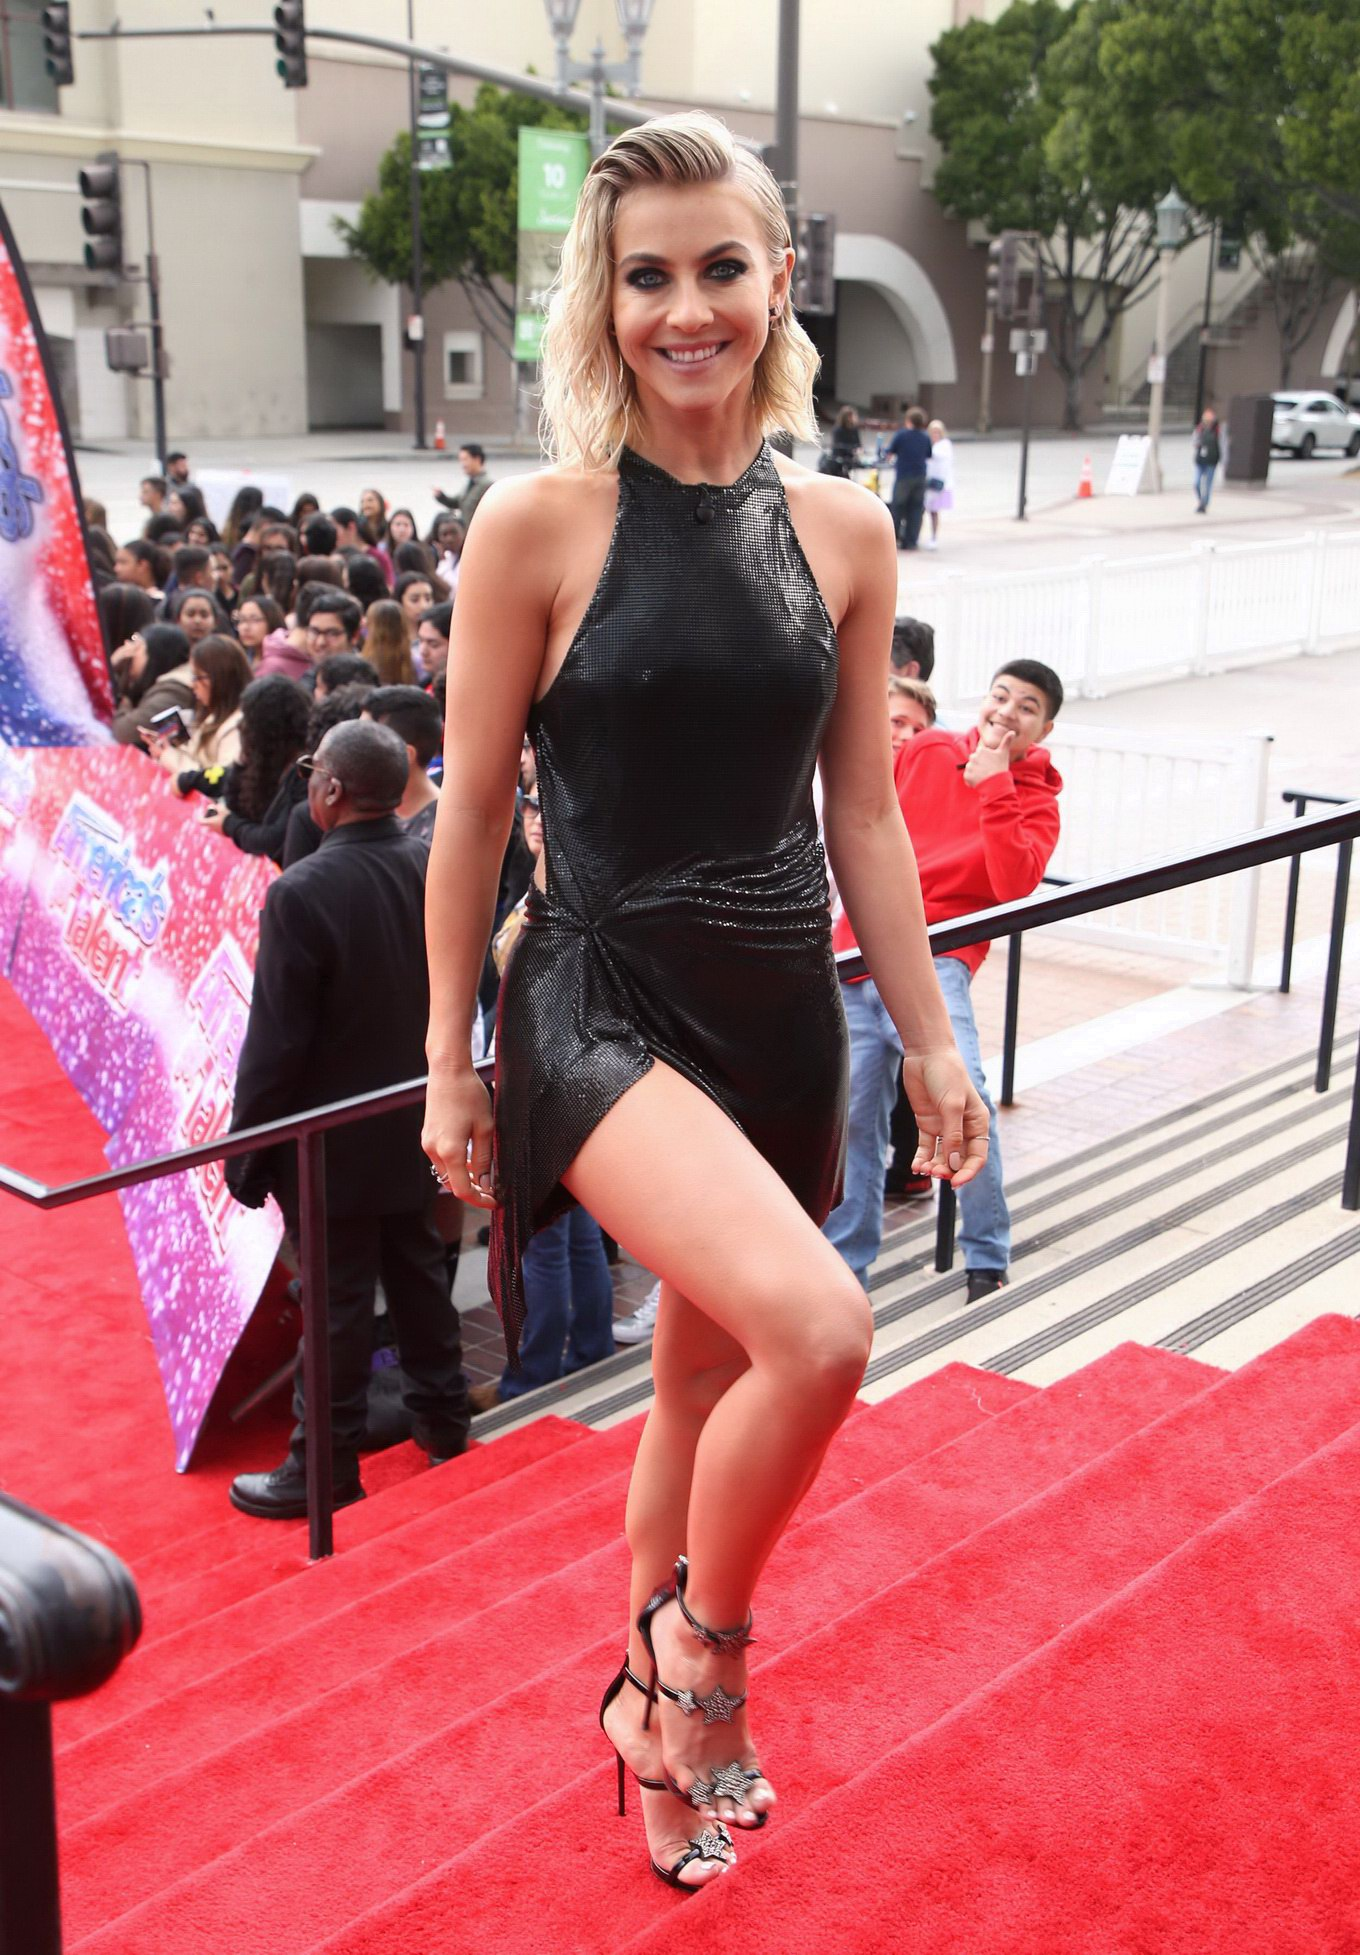 julianne hough braless in a tiny black bare back mini